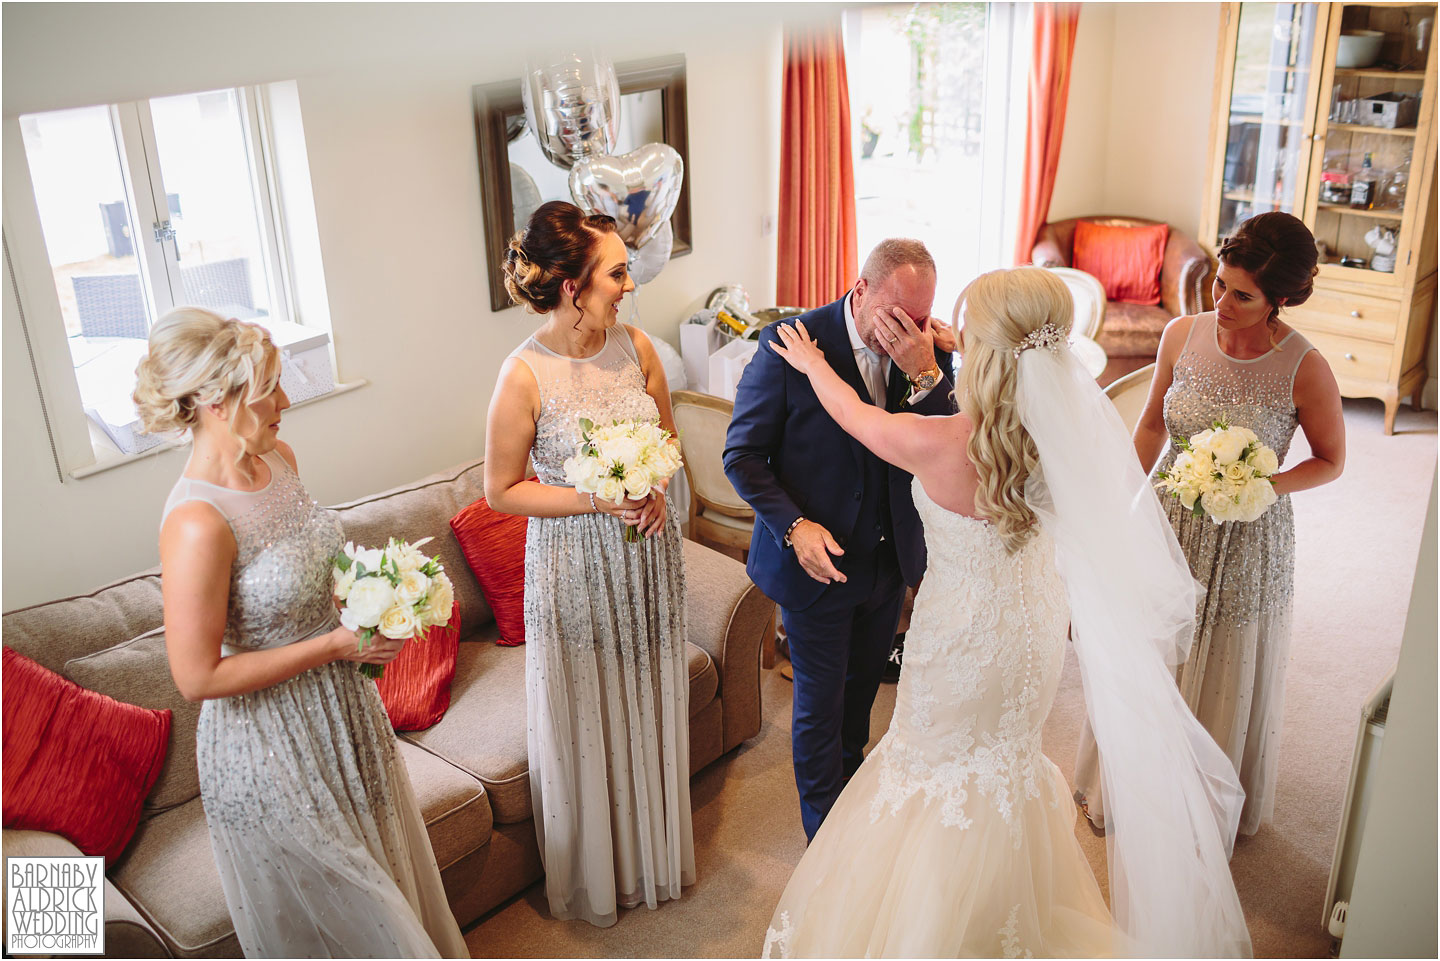 An emotional moment at Priory Cottages Wetherby